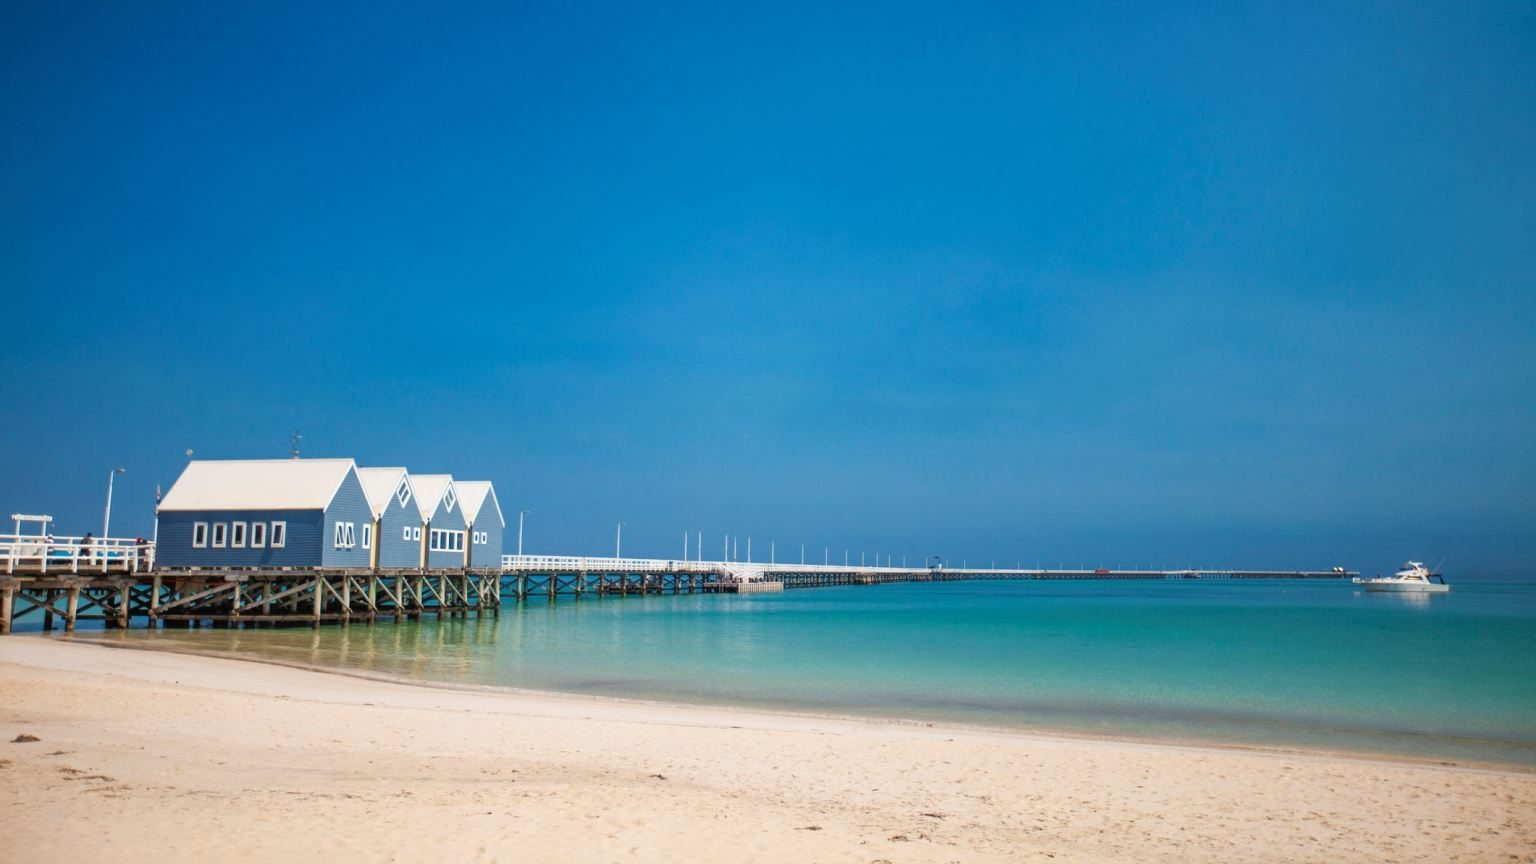 Busselton Jetty is the longest wooden jetty in the world, stretching almost 2 km out to sea from the town of Busselton, Western Australia. (Busselton Jetty is the longest wooden jetty in the world, stretching almost 2 km out to sea from the town of Bu